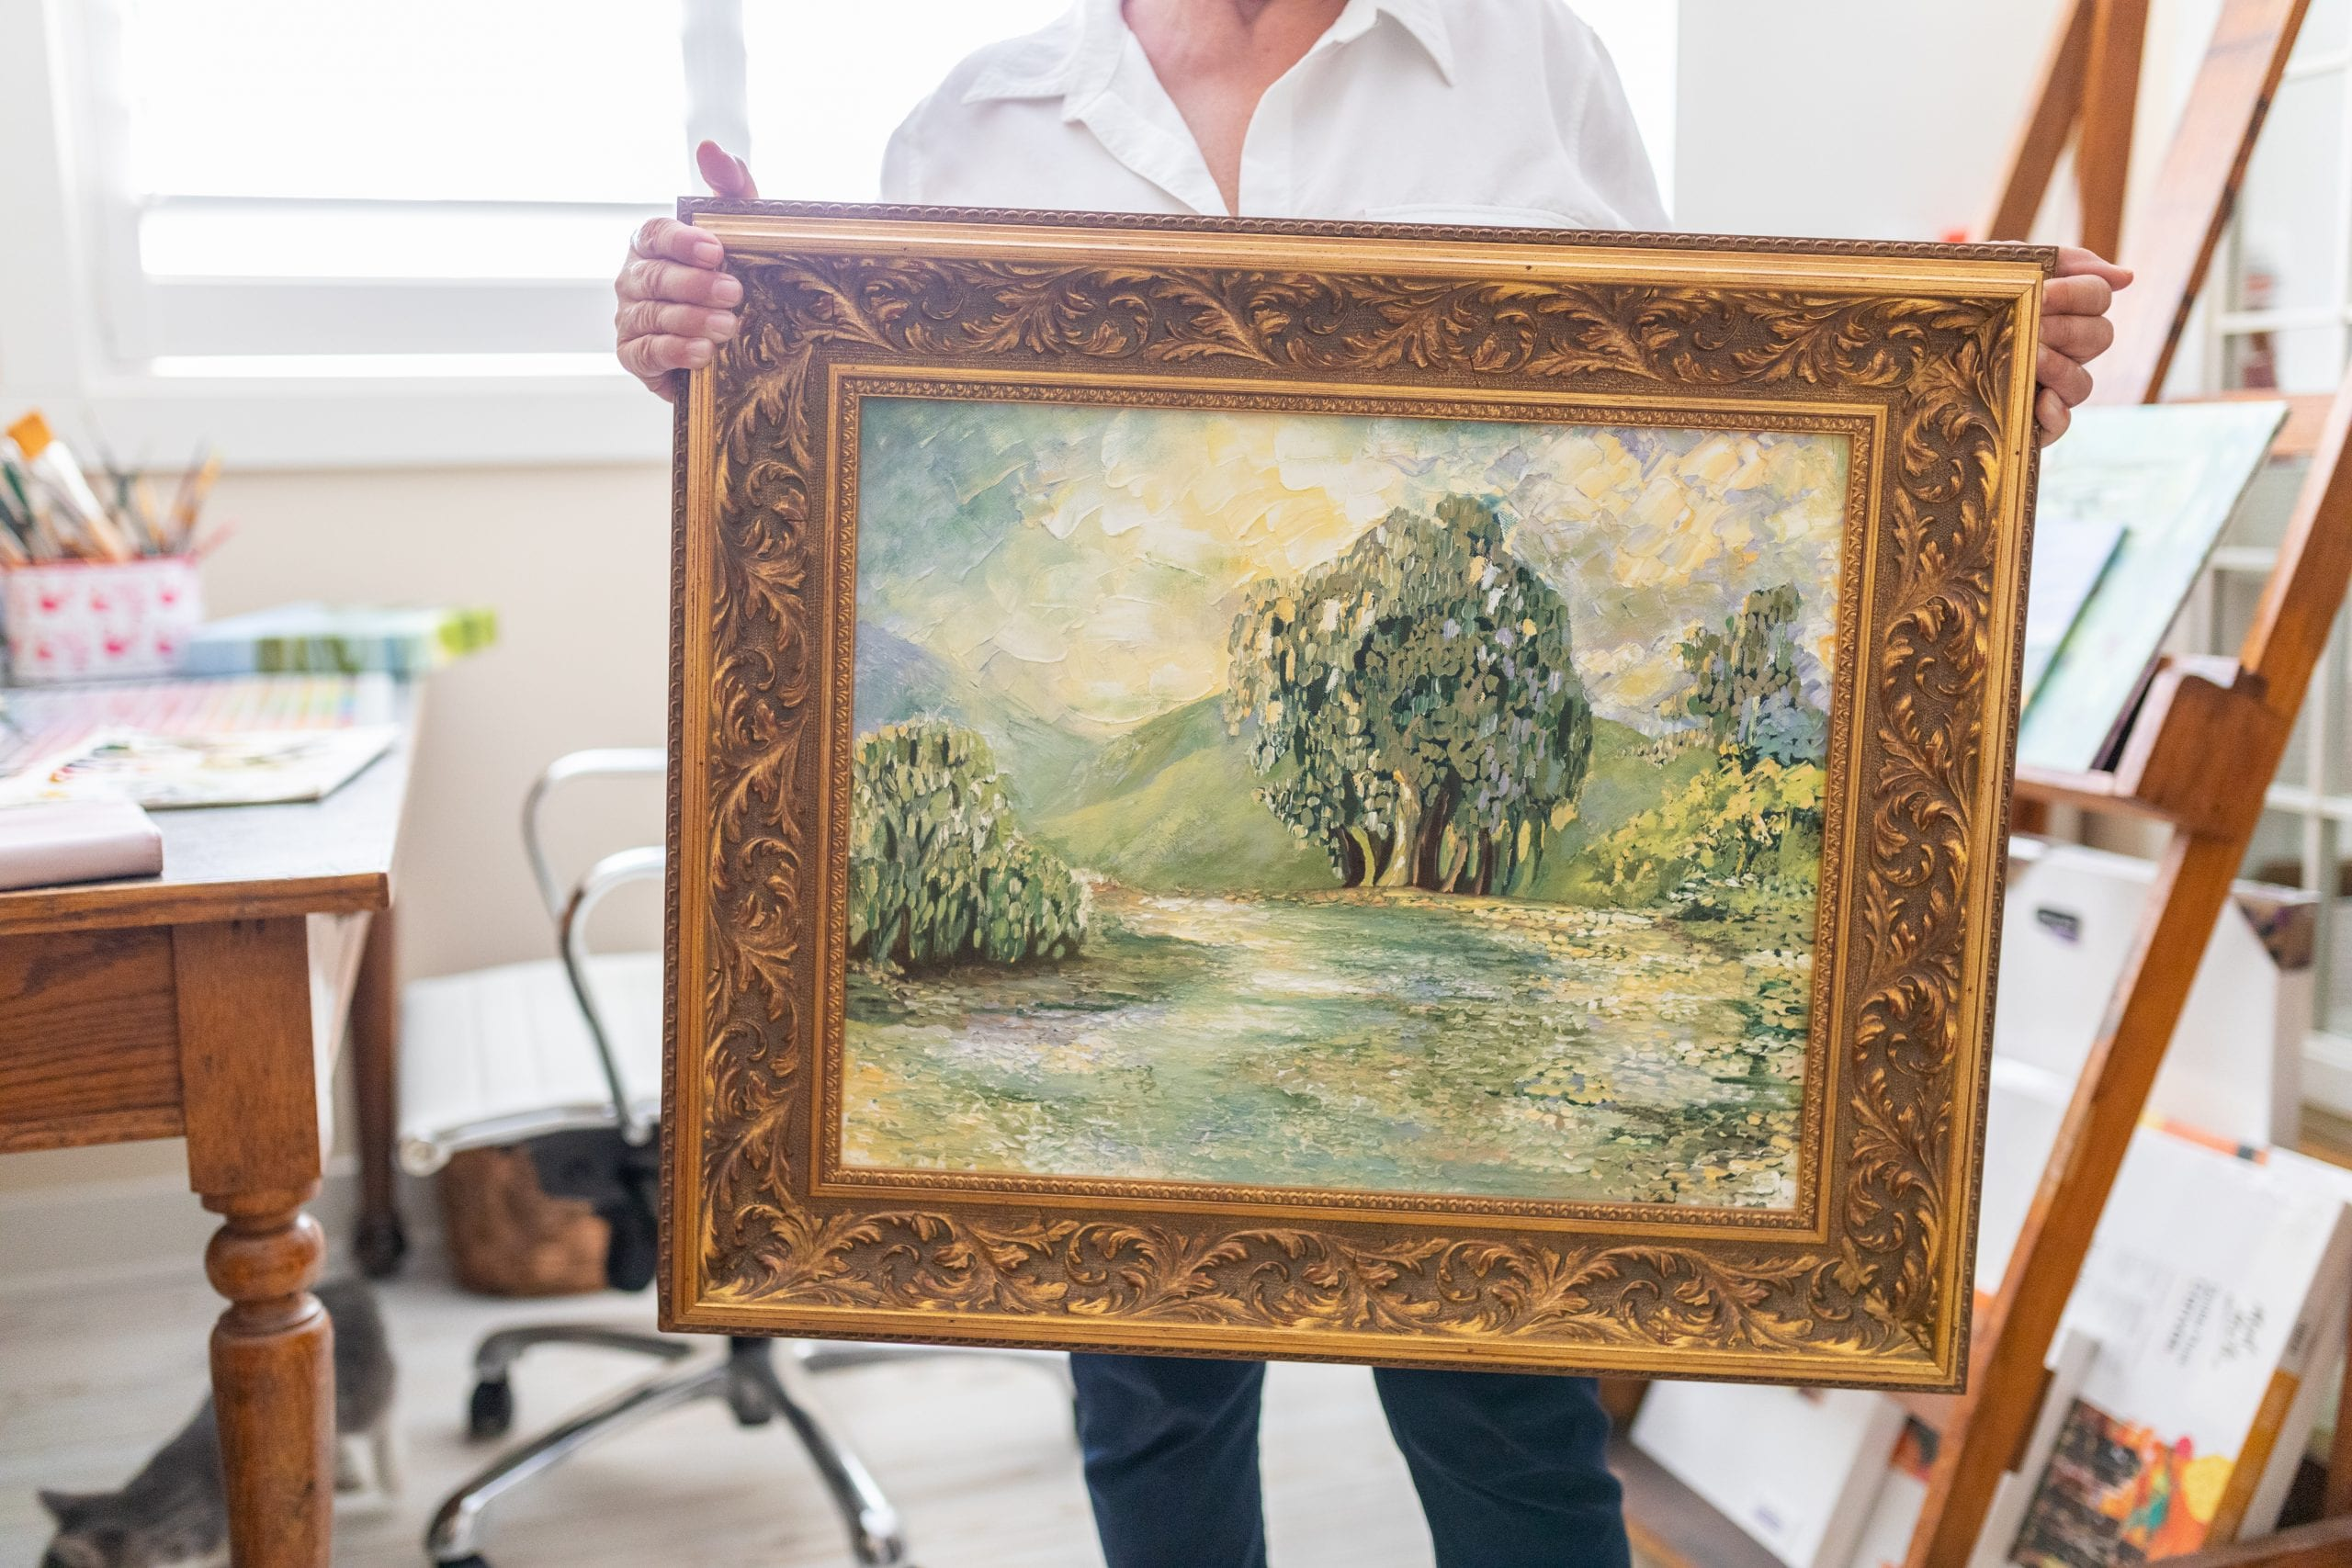 Peggy Harris holding a framed painting of an outdoor scene with trees, a field and a rolling green hill in the background.